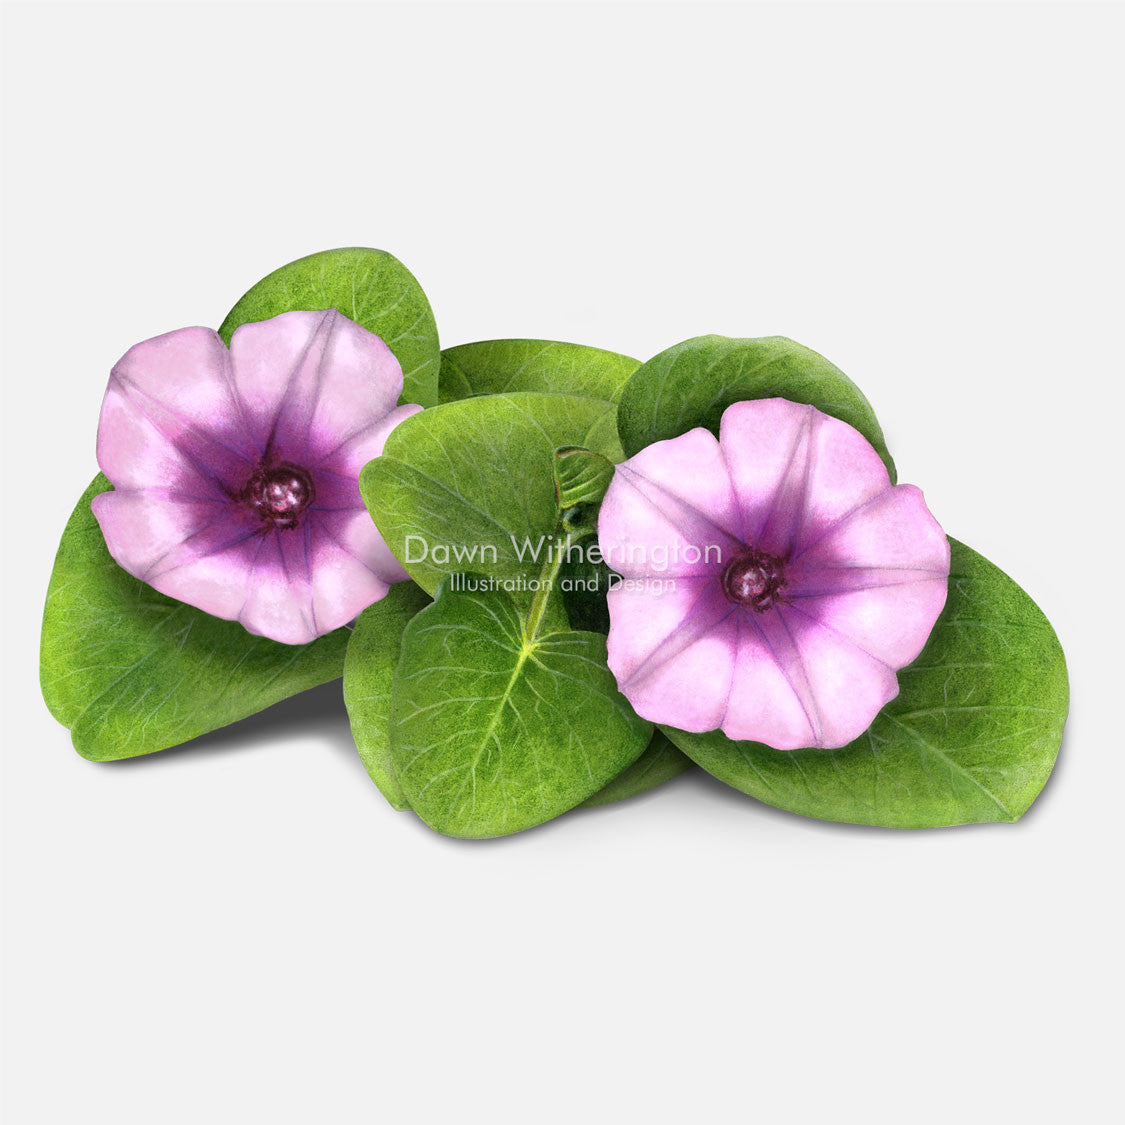 This beautiful illustration of railroad vine, Ipomoea pes-caprae, is botanically accurate in detail.